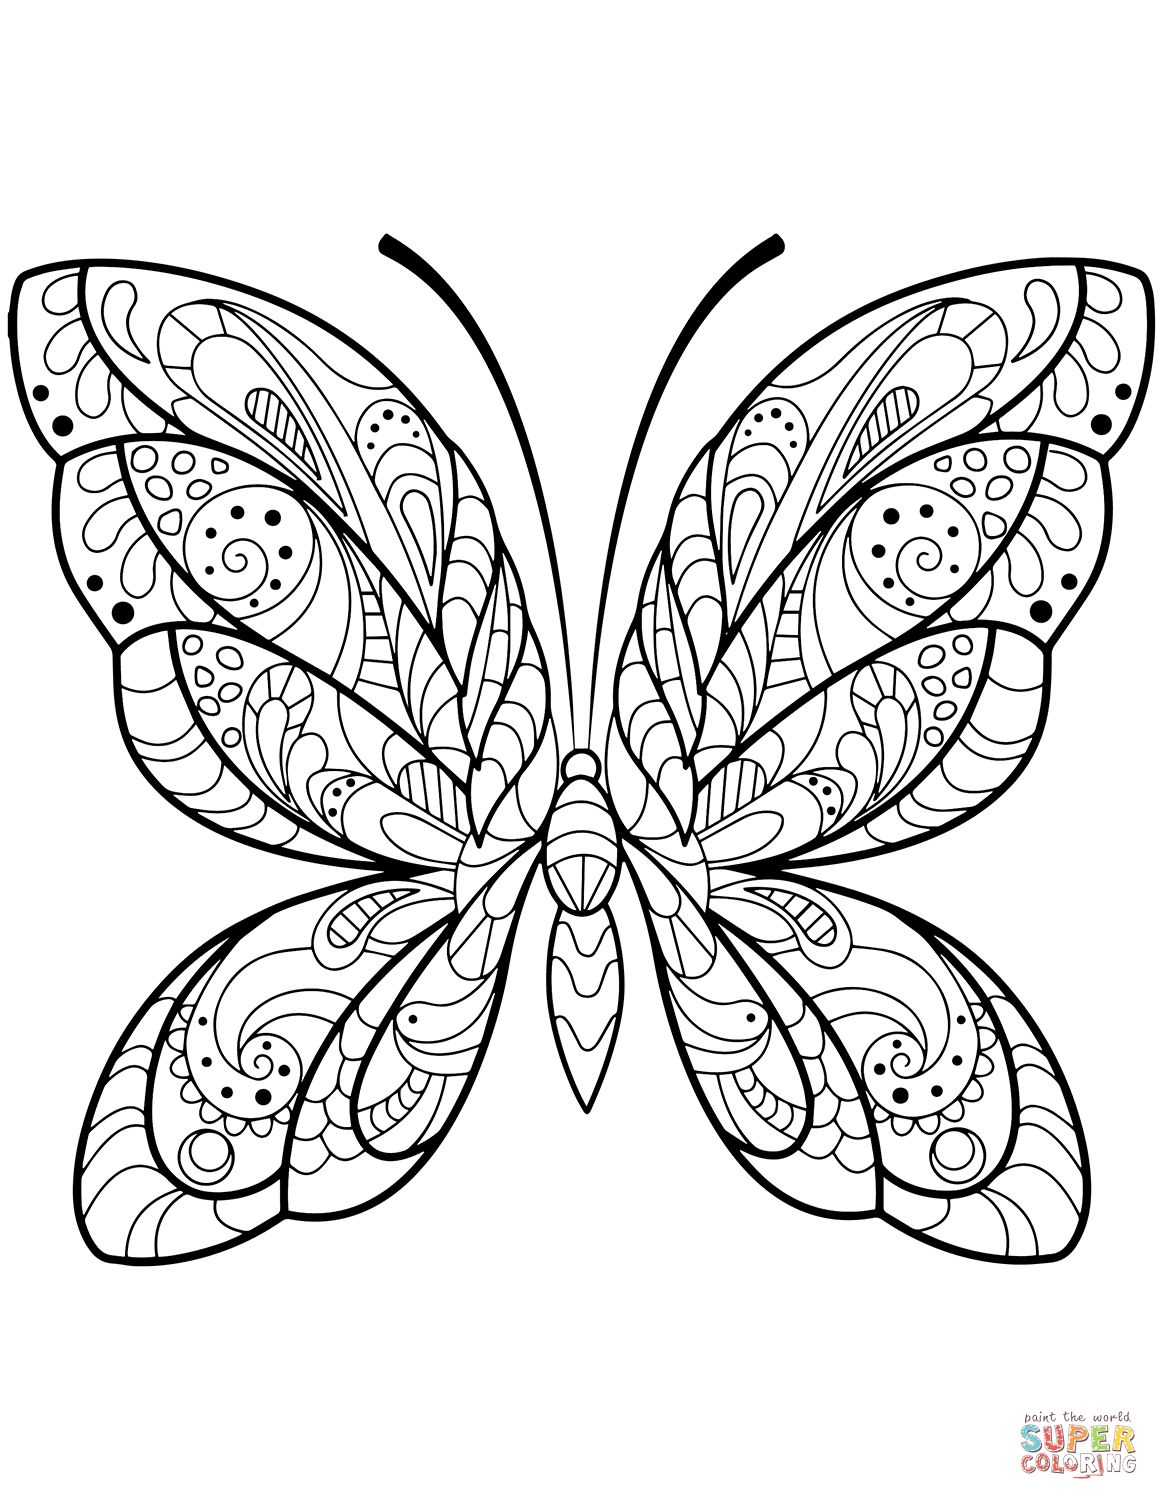 Free Butterfly Coloring Pages Butterfly Coloring Pages Free Coloring Pages Entitlementtrap Com Butterfly Coloring Page Insect Coloring Pages Pattern Coloring Pages